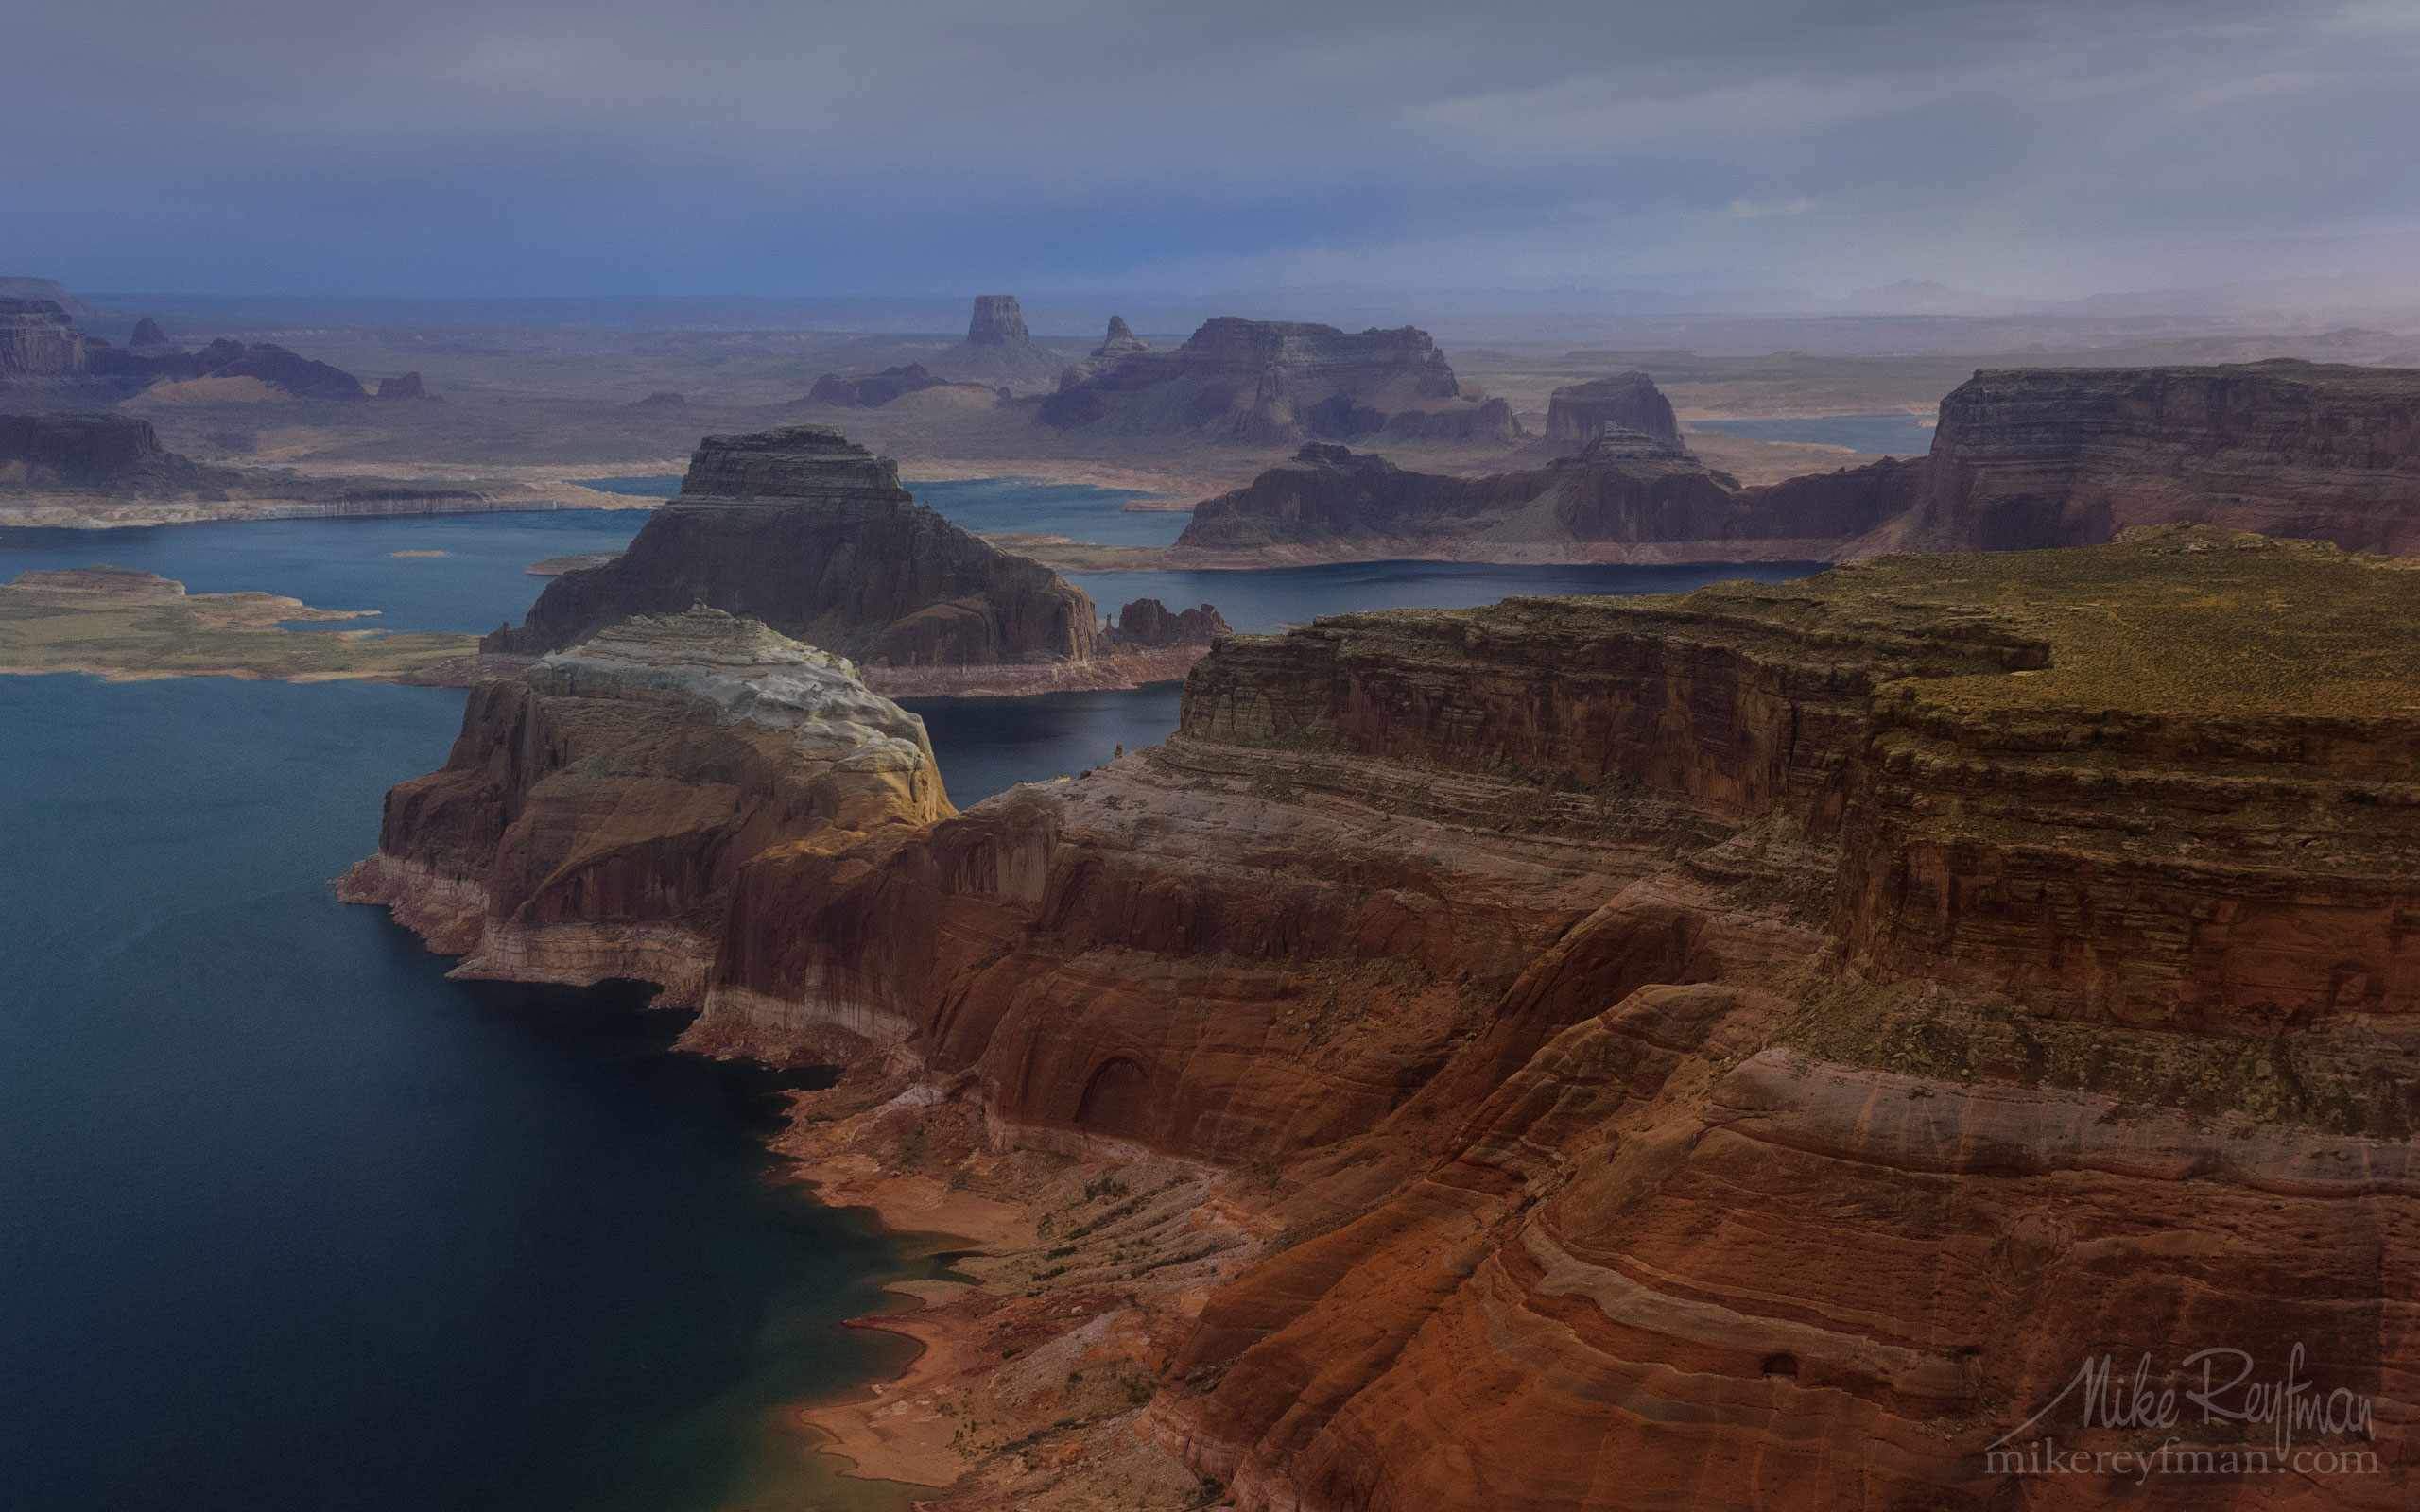 Camel Rock and Gregory Butte, Dominguez, Boundary and Tower Buttes, Lake Powell, Utah/Arizona, USA. Aerial. 043-LP3_MER7044.jpg - Lake Powell, Glen Canyon NAR. Colorado and Sun Juan Rivers. Utah/Arizona, USA  - Mike Reyfman Photography